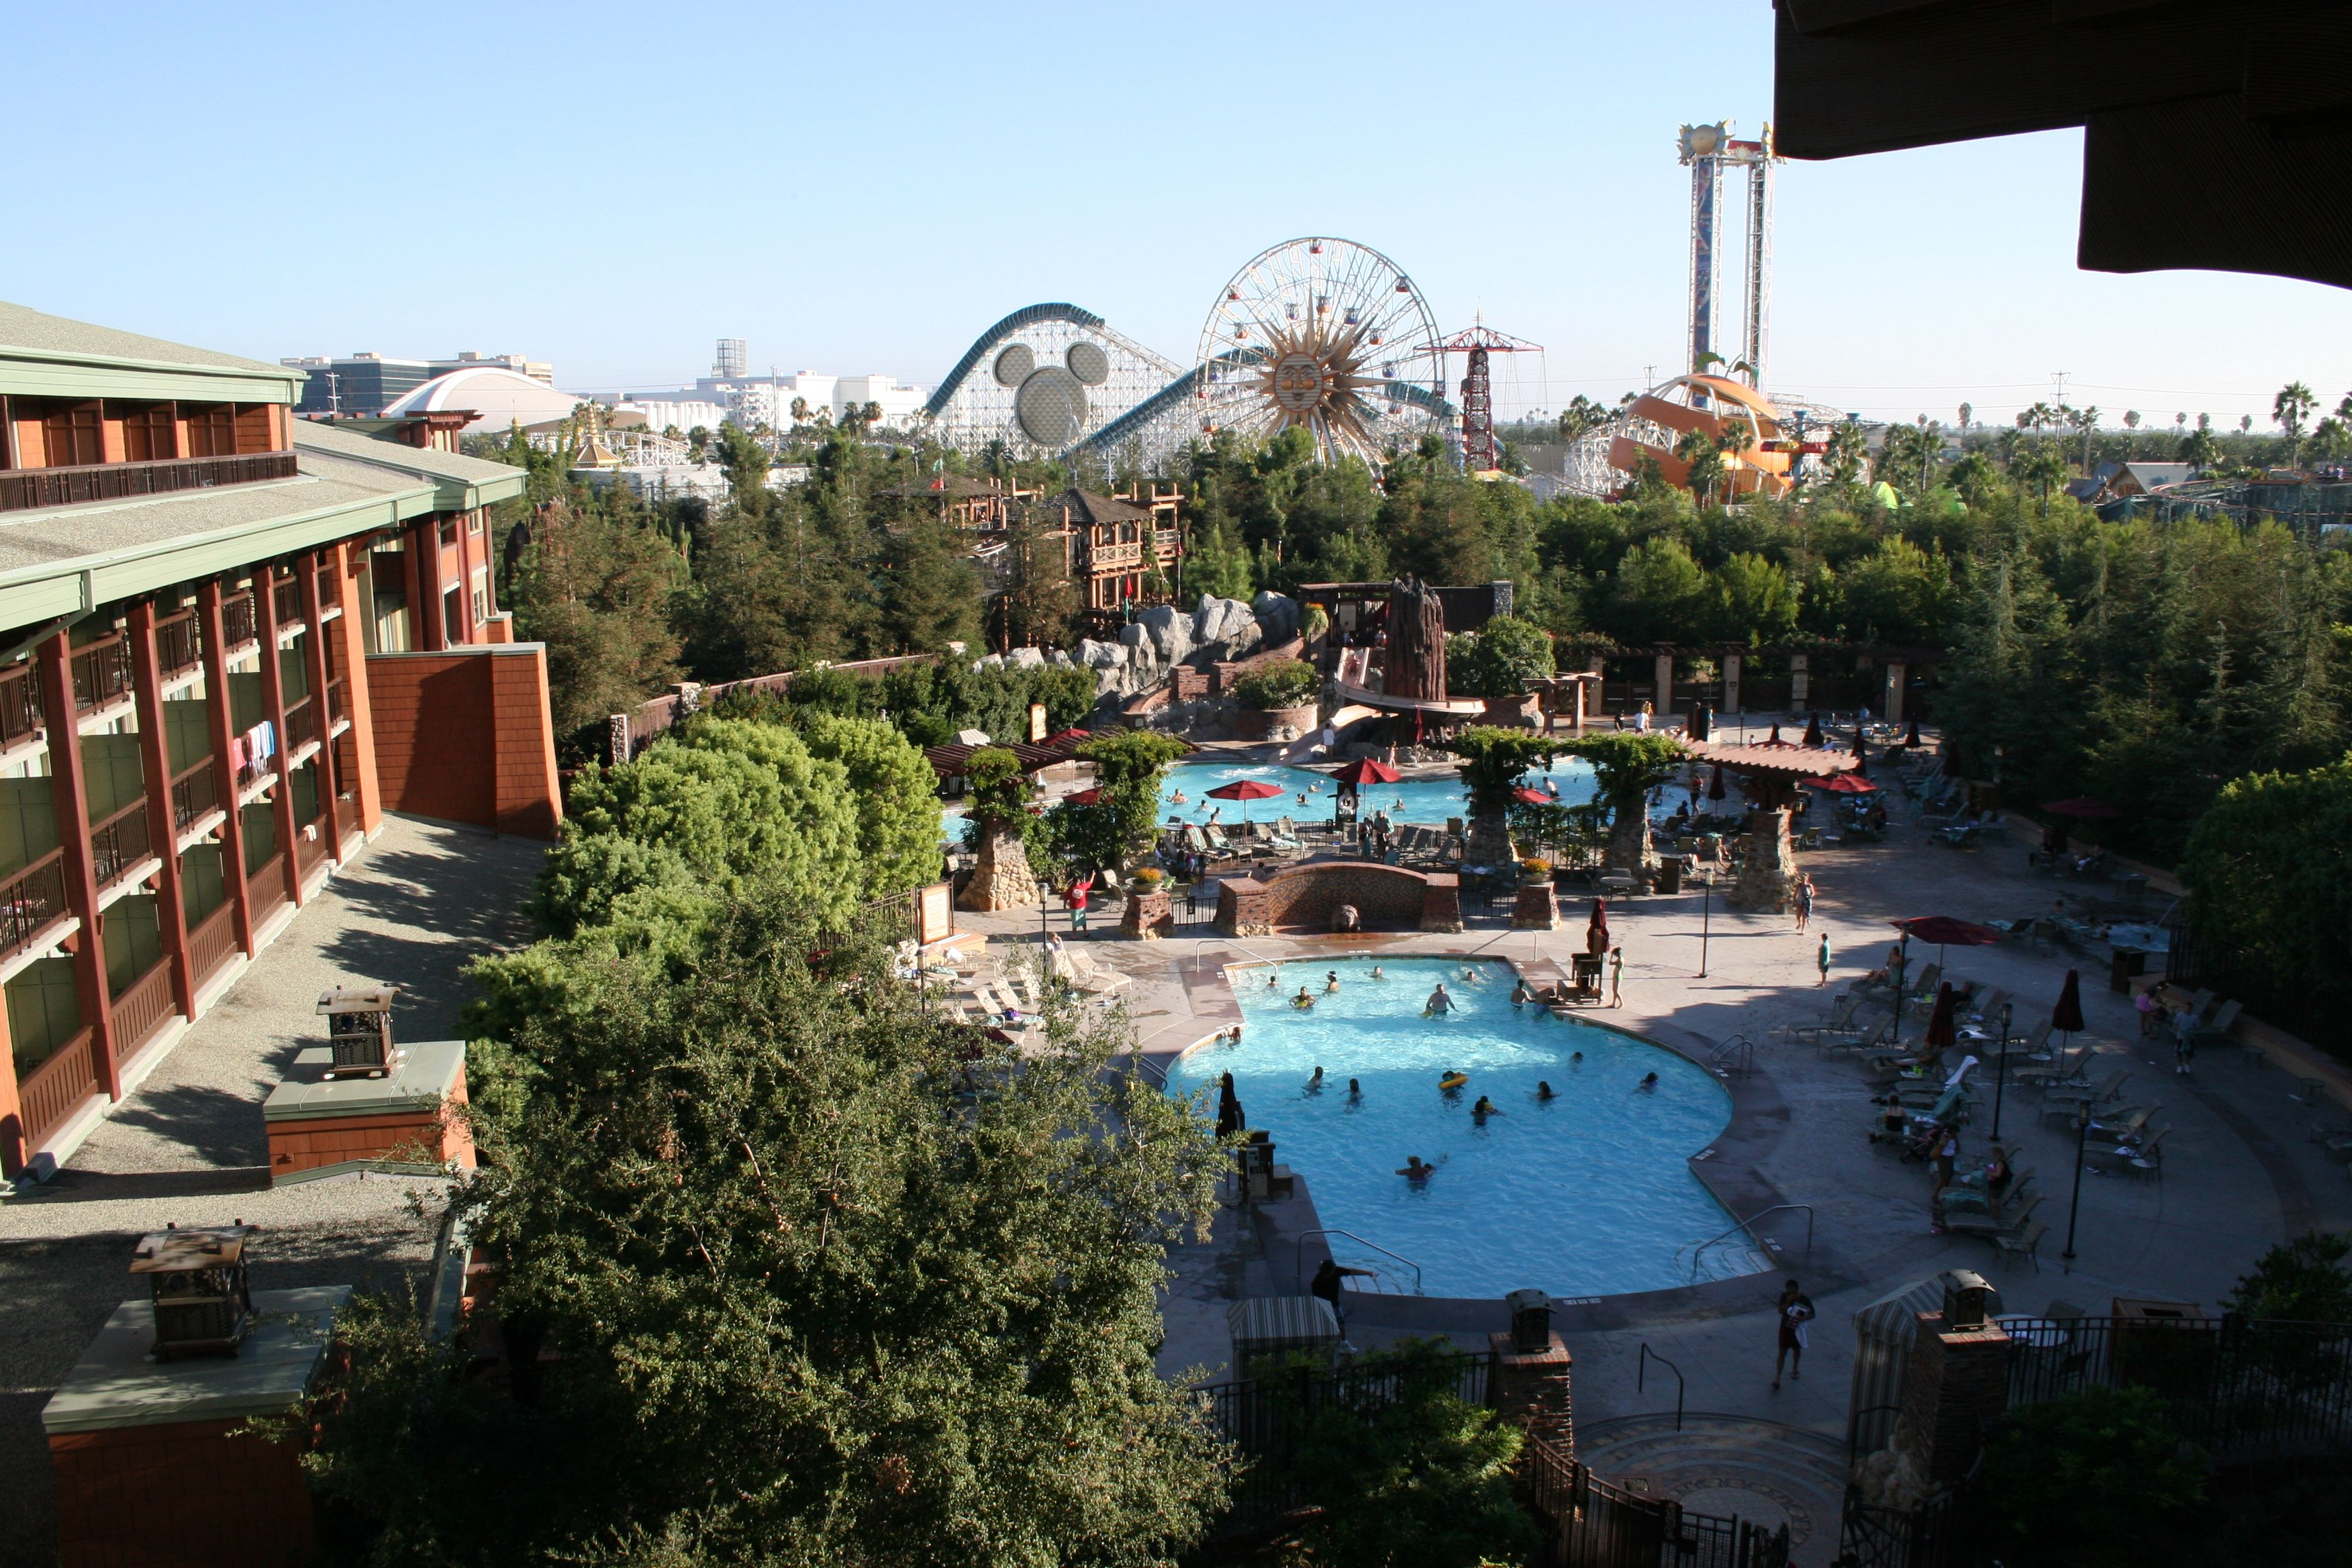 Grand Californian Hotel With Kim The Kids Only Disney Inside A Theme